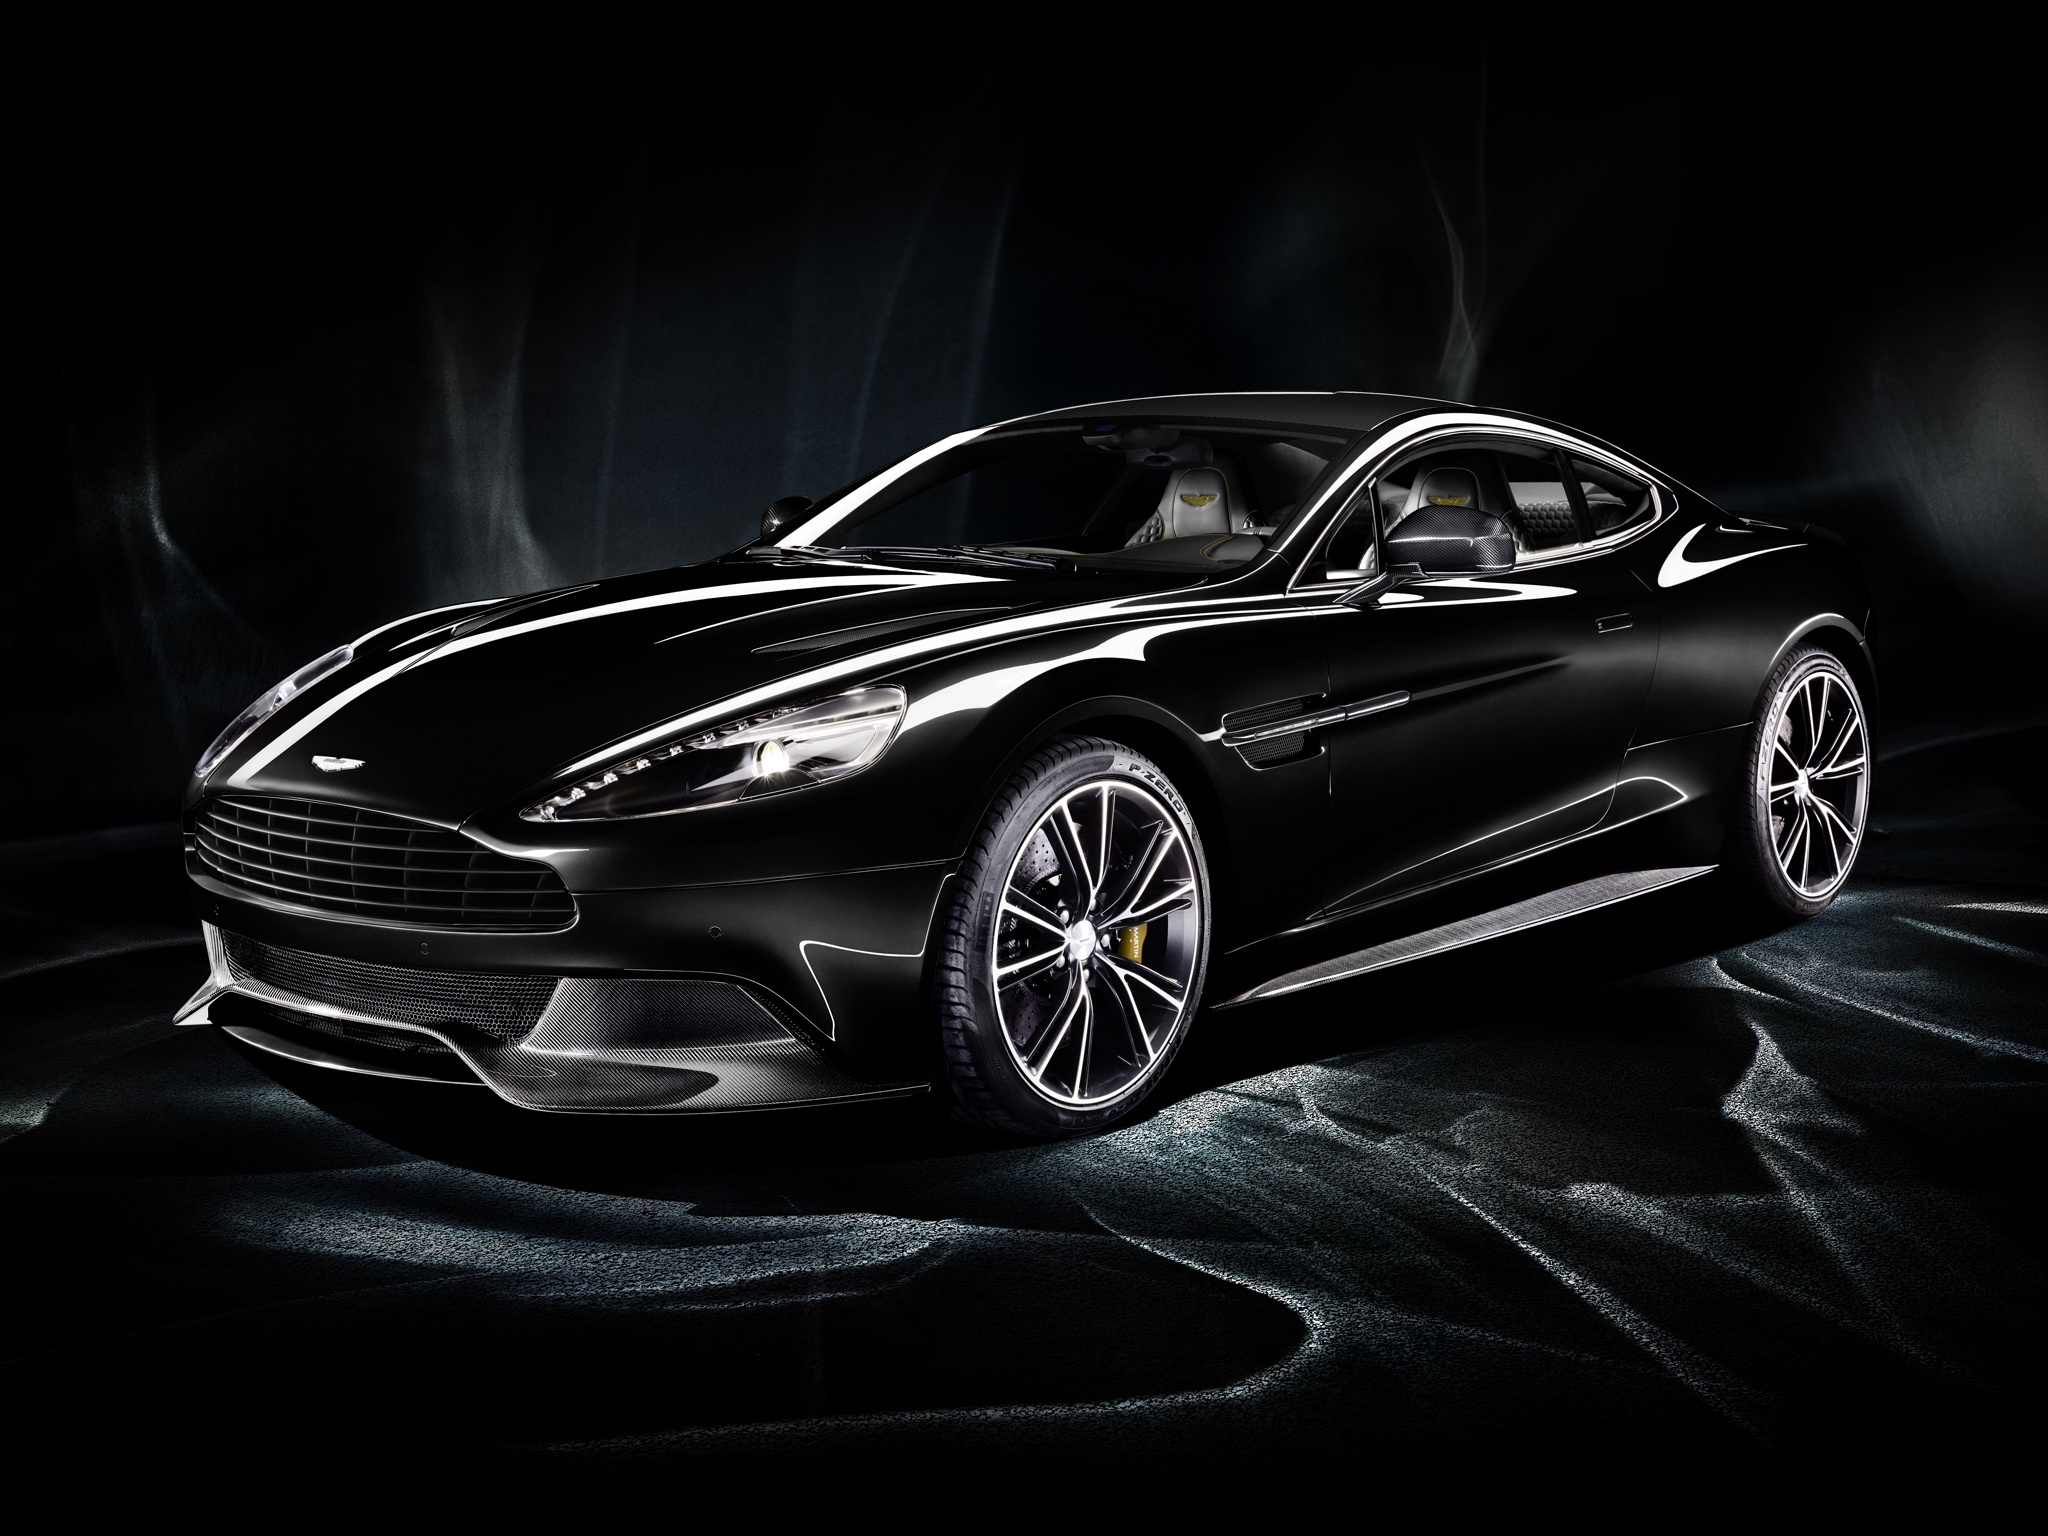 aston martin vanquish wallpaper gallery 2048x1536